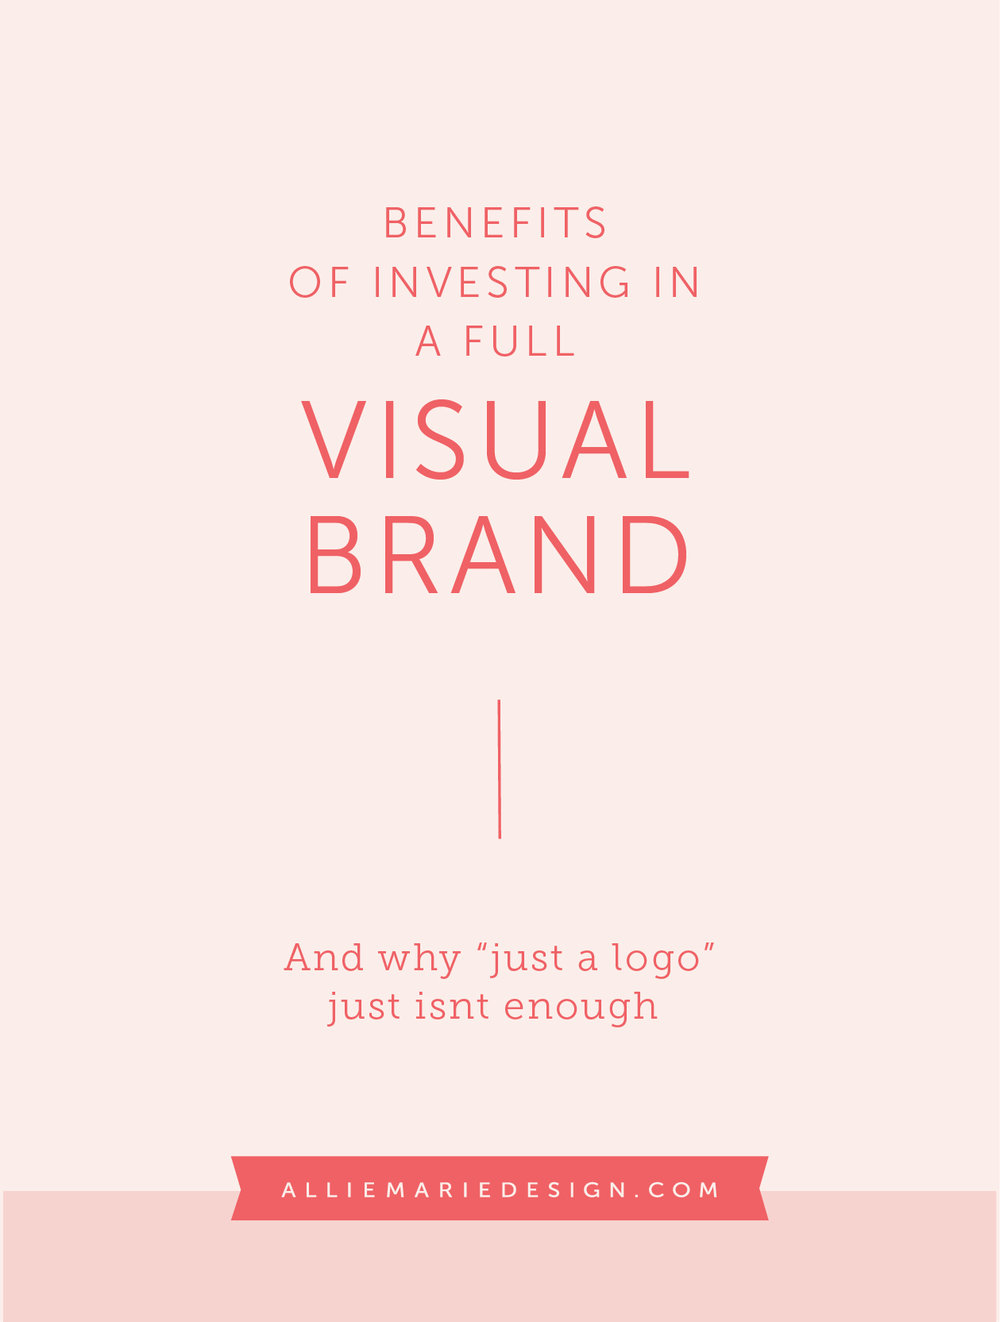 """Benefits of investing in a full visual brand and why """"just a logo"""" just isn't enough"""